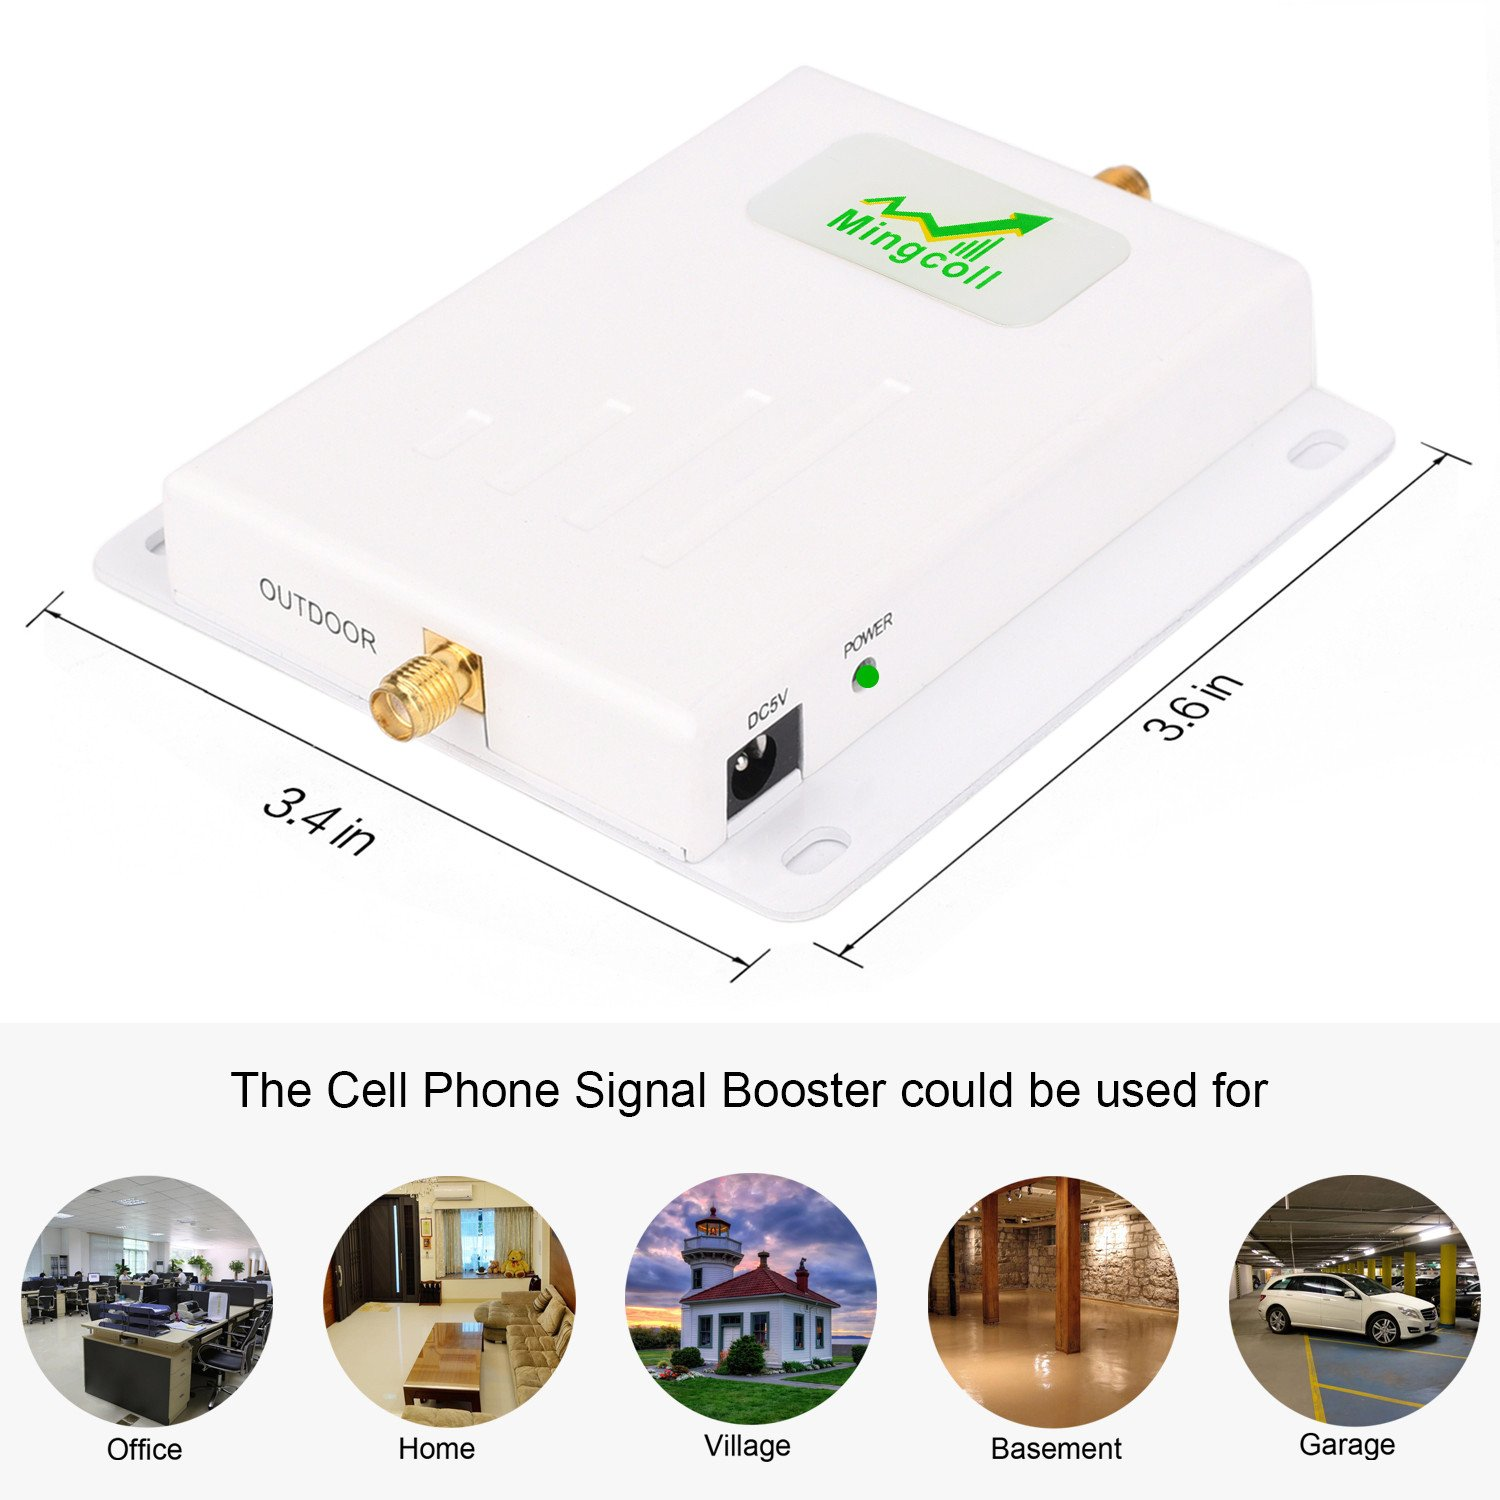 Mingcoll Cell Signal Booster ATT 850MHz 2G 3G Band 5 Cell Phone Signal Repeater Booster With Outdoor Yagi Antenna Kit for Home and Office (ATT 2G 3G) by Mingcoll (Image #3)